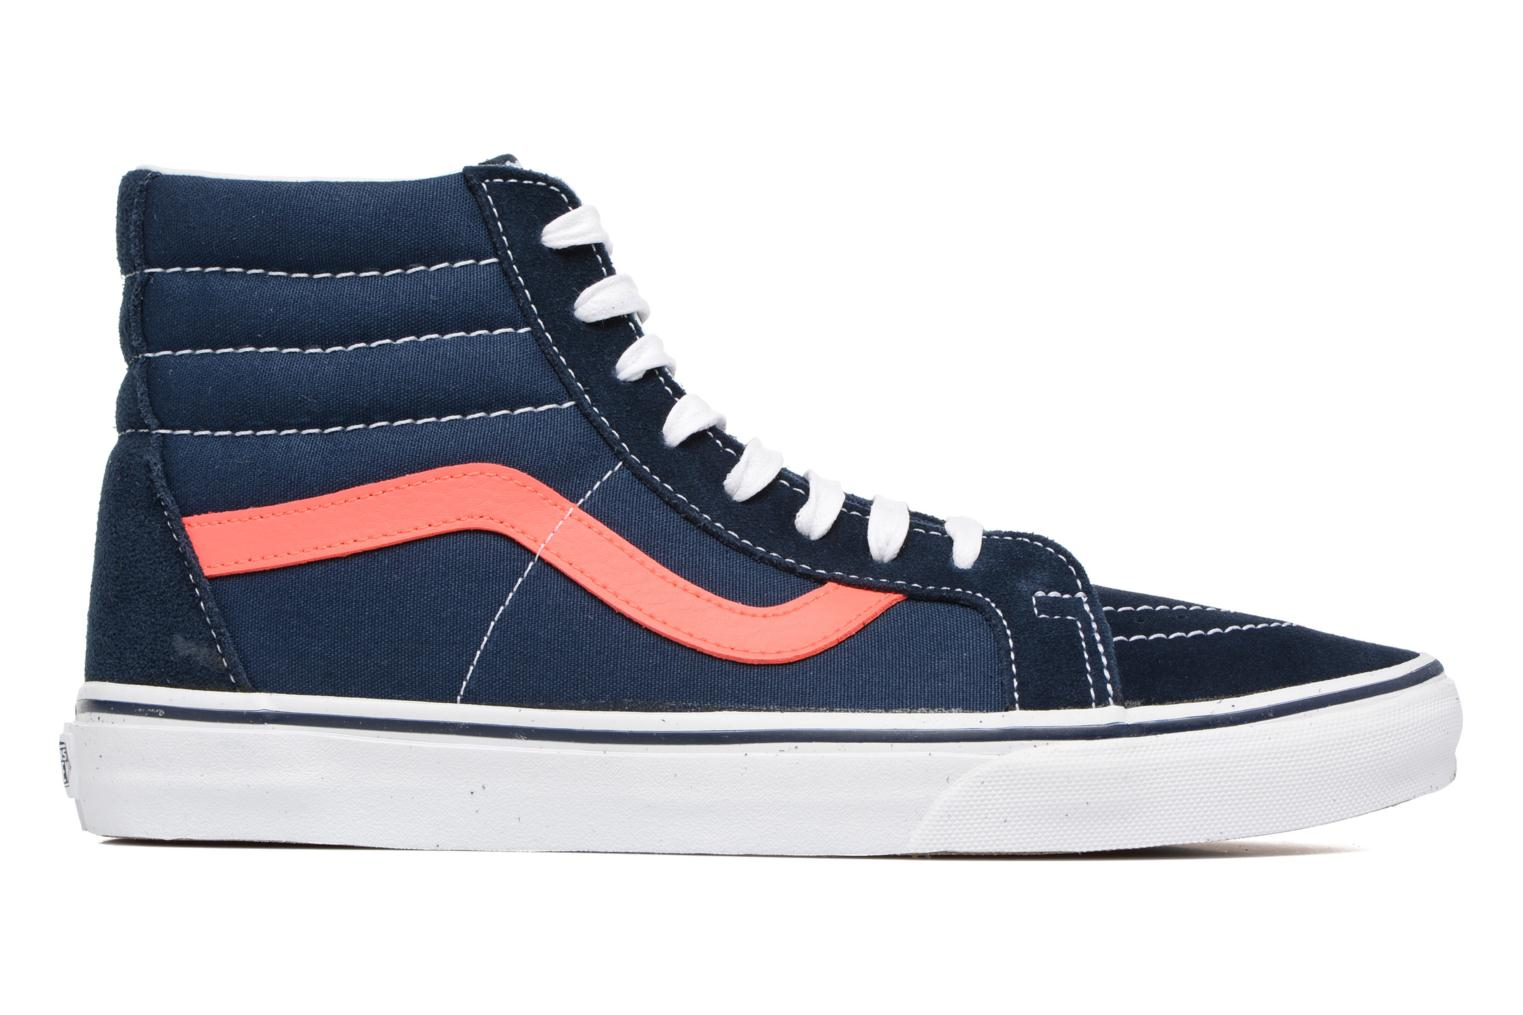 Sk8-Hi Reissue (Neon Leather) Dress Blues/Neon Red